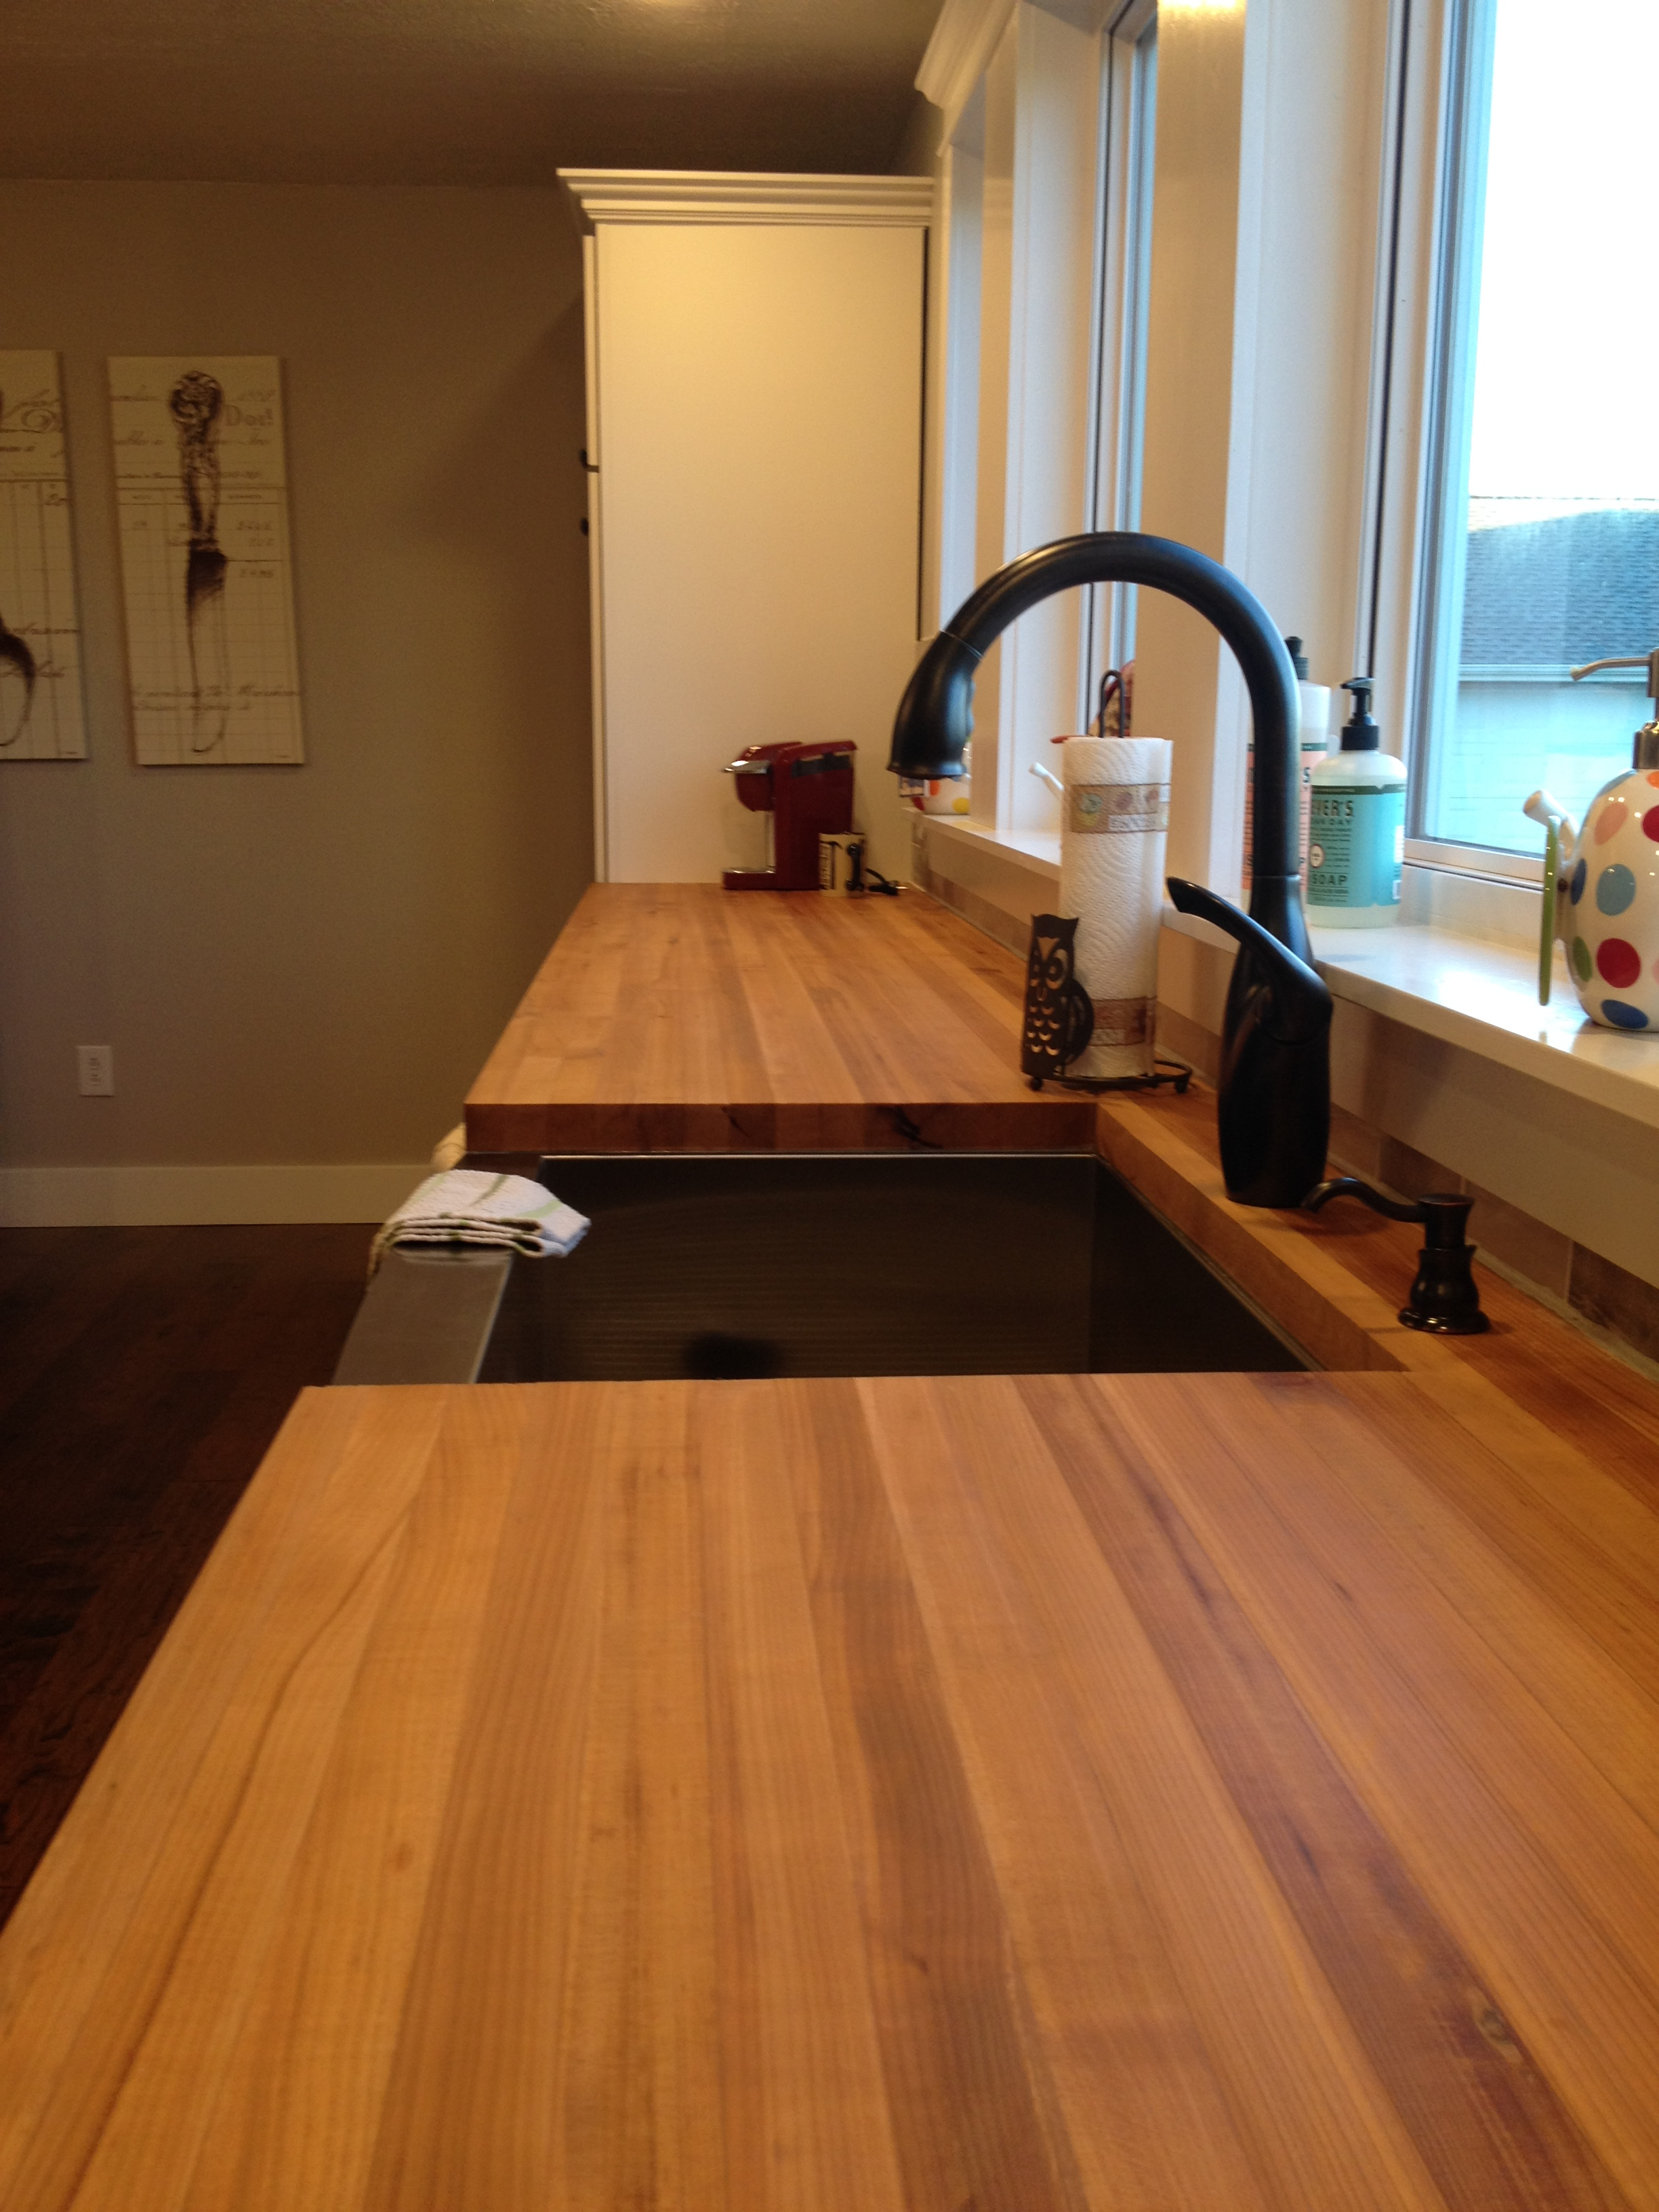 My Take on Butcher Block Countertops...